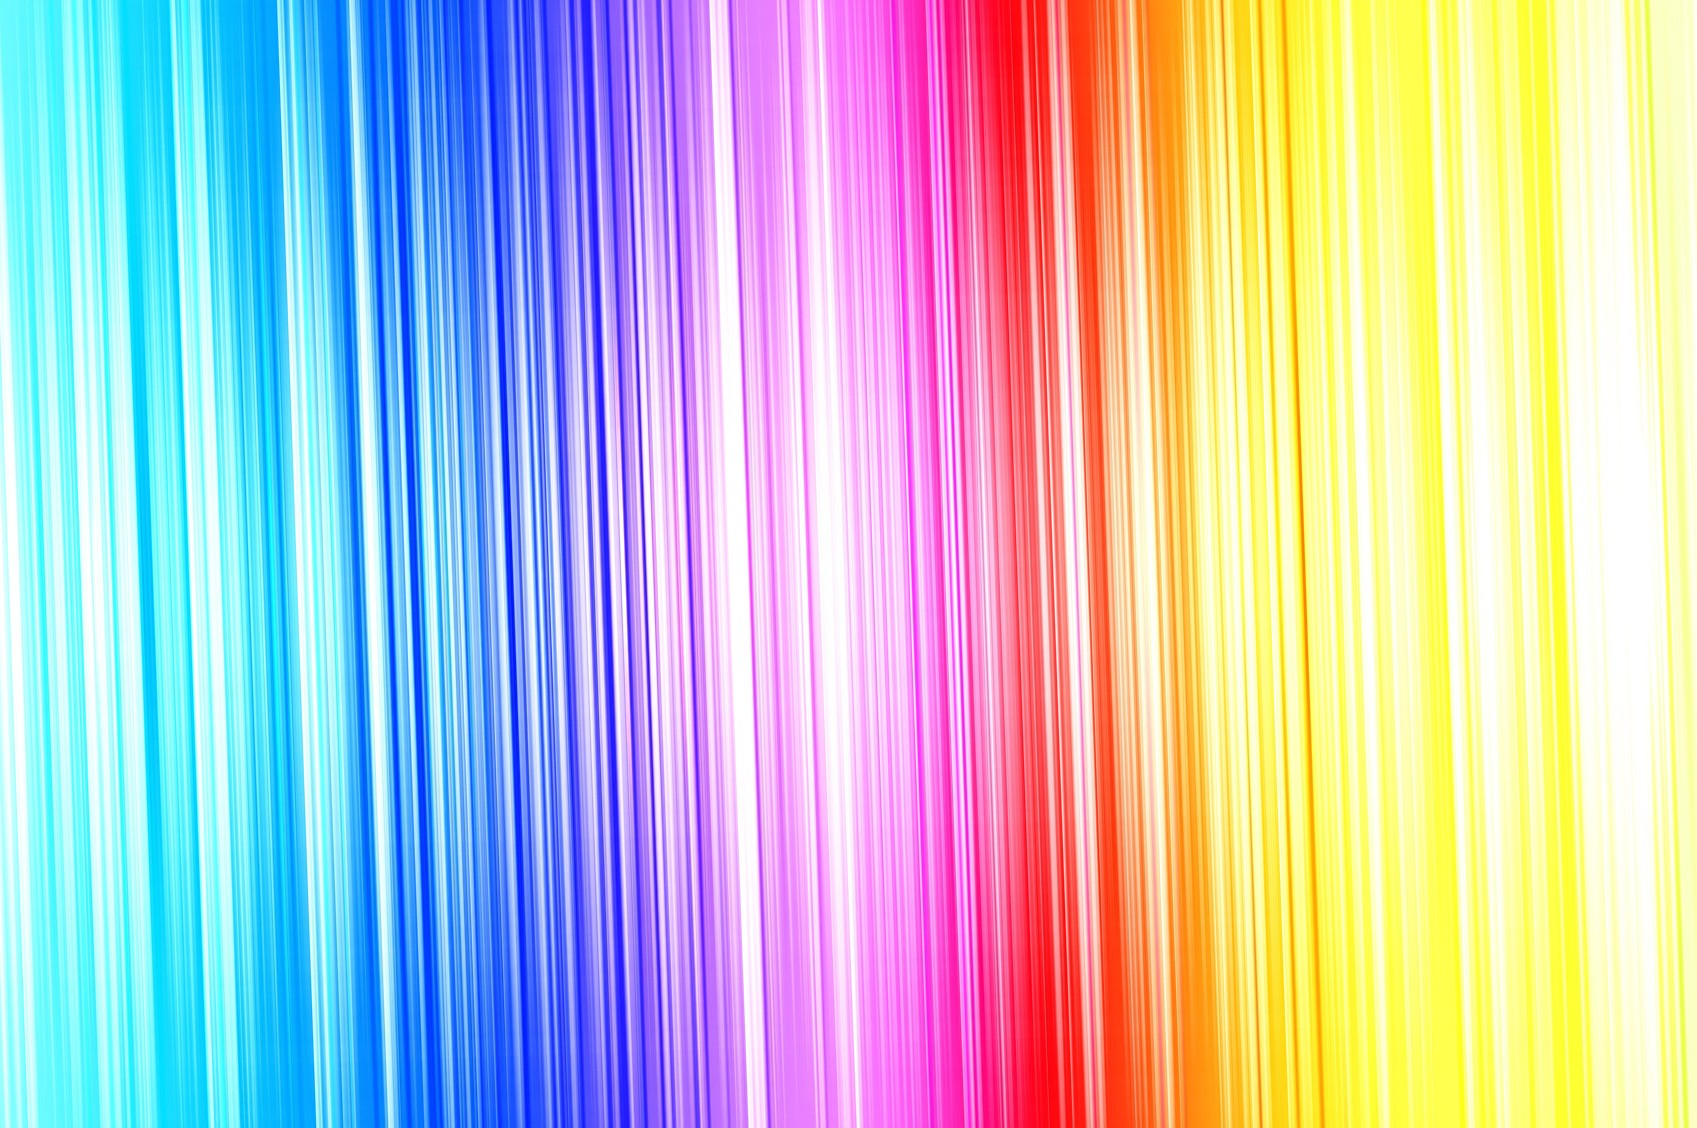 Hd Abstract Wallpapers, Paints, High Definition Wallpapers, - Paints - HD Wallpaper